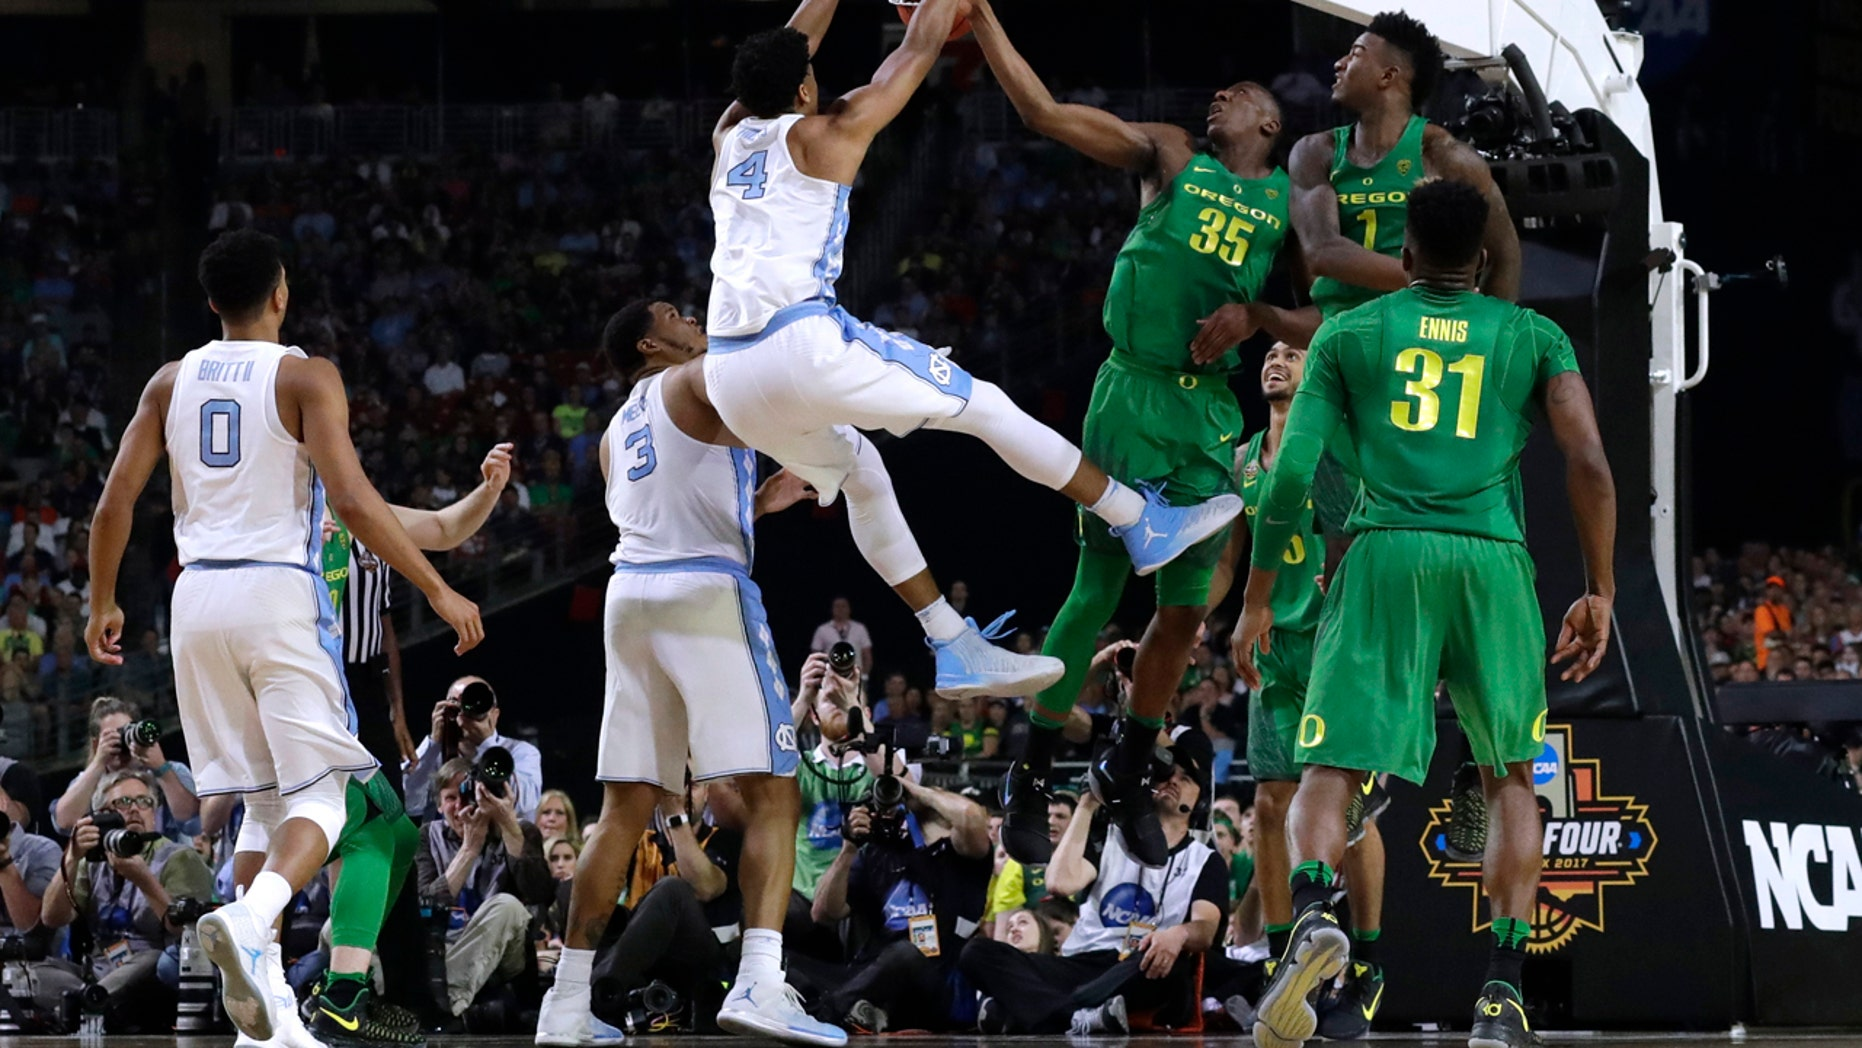 North Carolina forward Isaiah Hicks (4) dunks the ball over Oregon's Kavell Bigby-Williams (35) and Jordan Bell (1) during the first half in the semifinals of the Final Four NCAA college basketball tournament, Saturday, April 1, 2017, in Glendale, Ariz. (AP Photo/David J. Phillip)